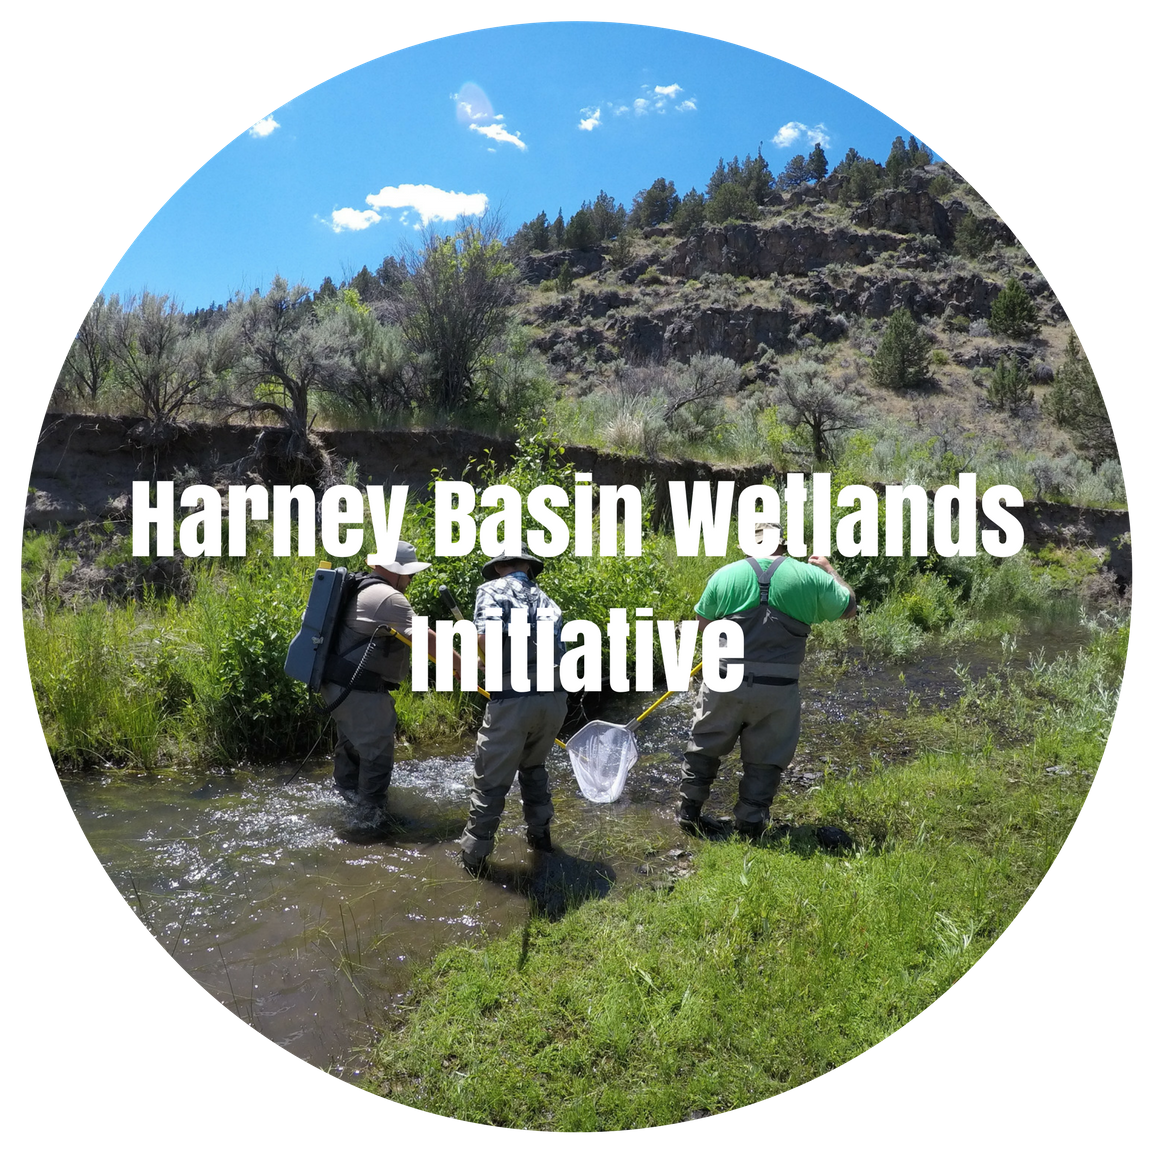 Harney Basin Wetlands Initiative